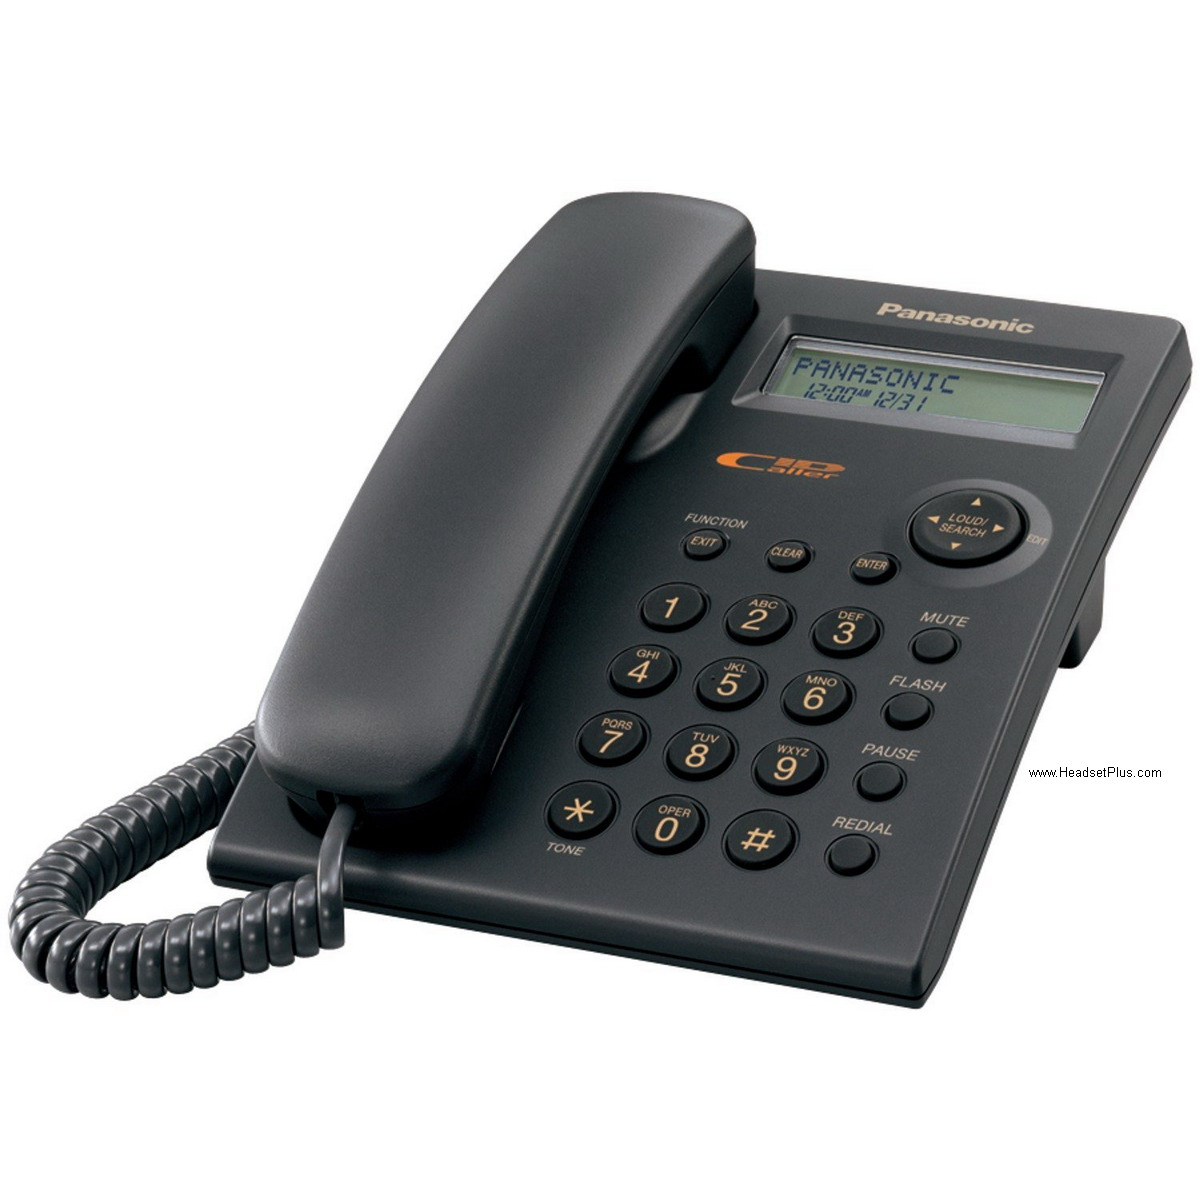 Panasonic KX-TSC11-B 1-Line Telephone with Caller ID